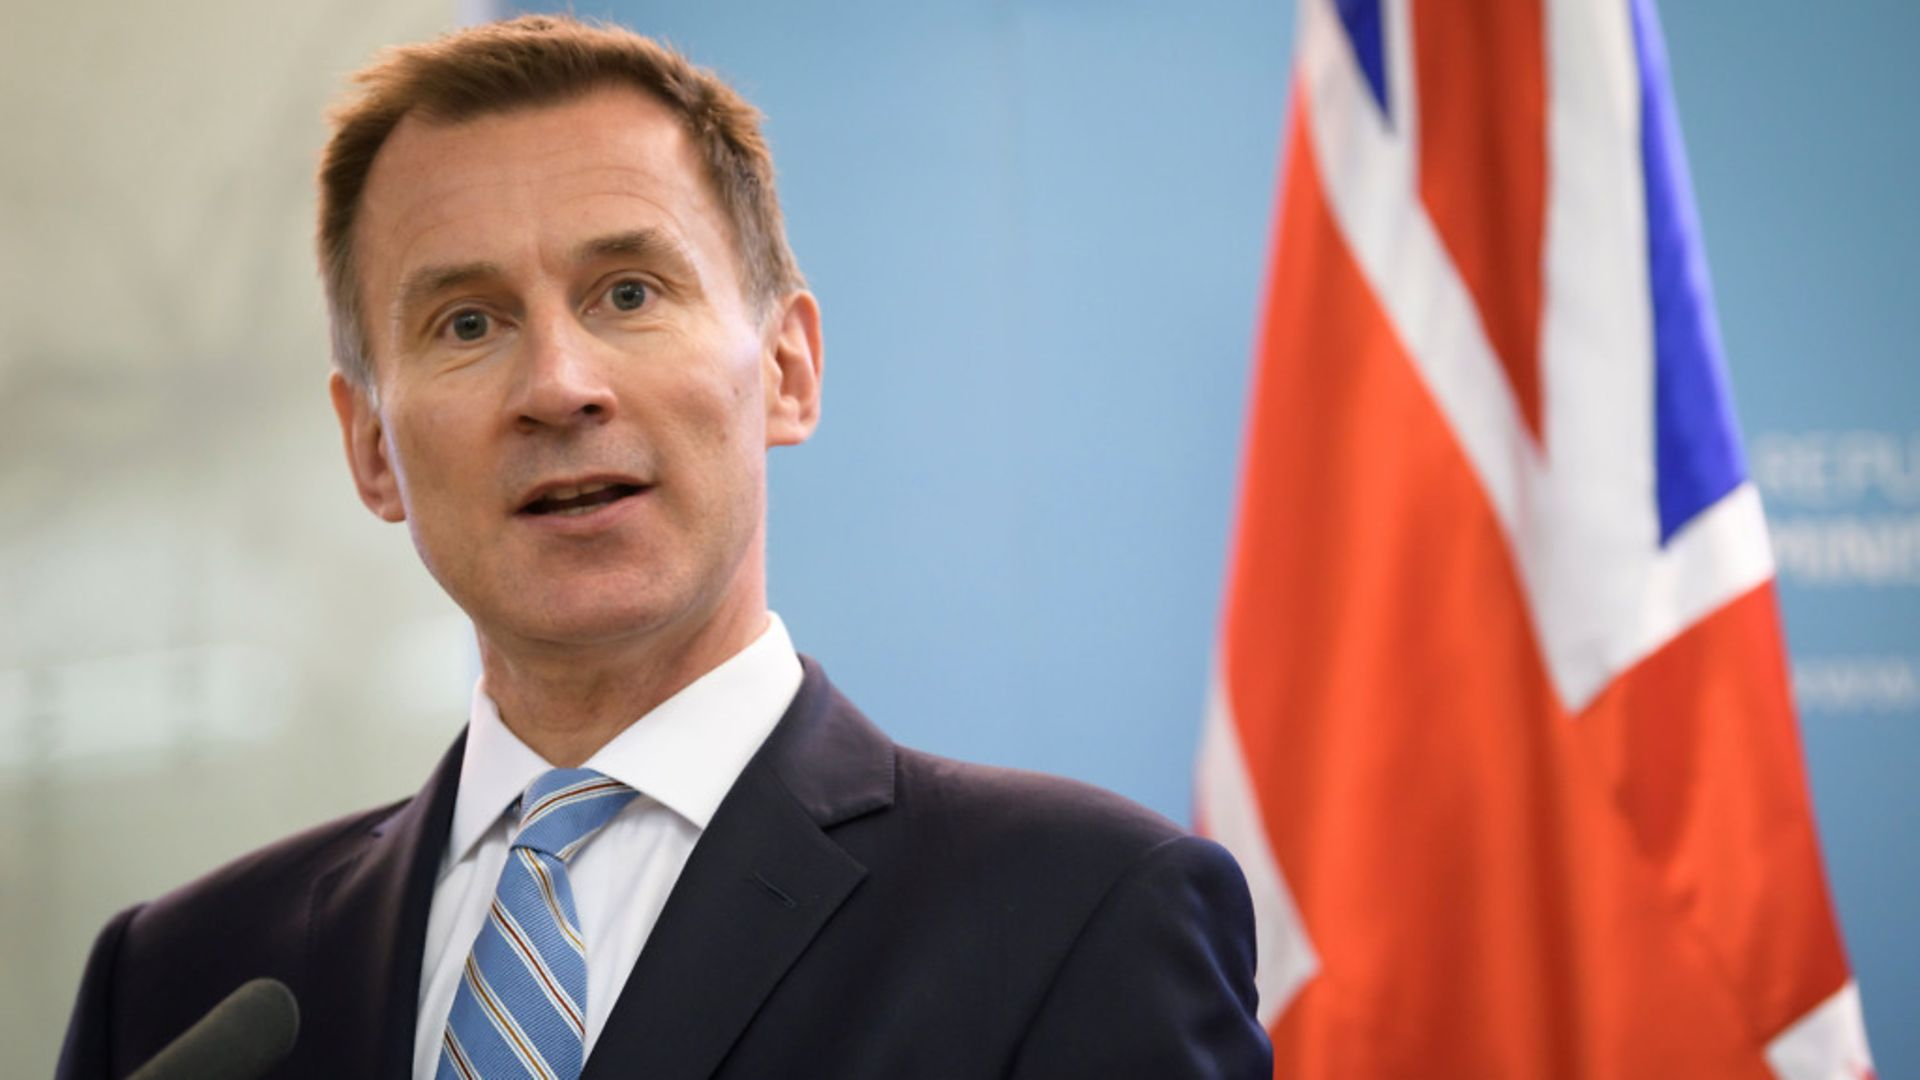 Tory former health minister Jeremy Hunt has said Covid cases should drop to '1,000 a day or less' before lifting restrictions - Credit: JURE MAKOVEC/AFP/Getty Images